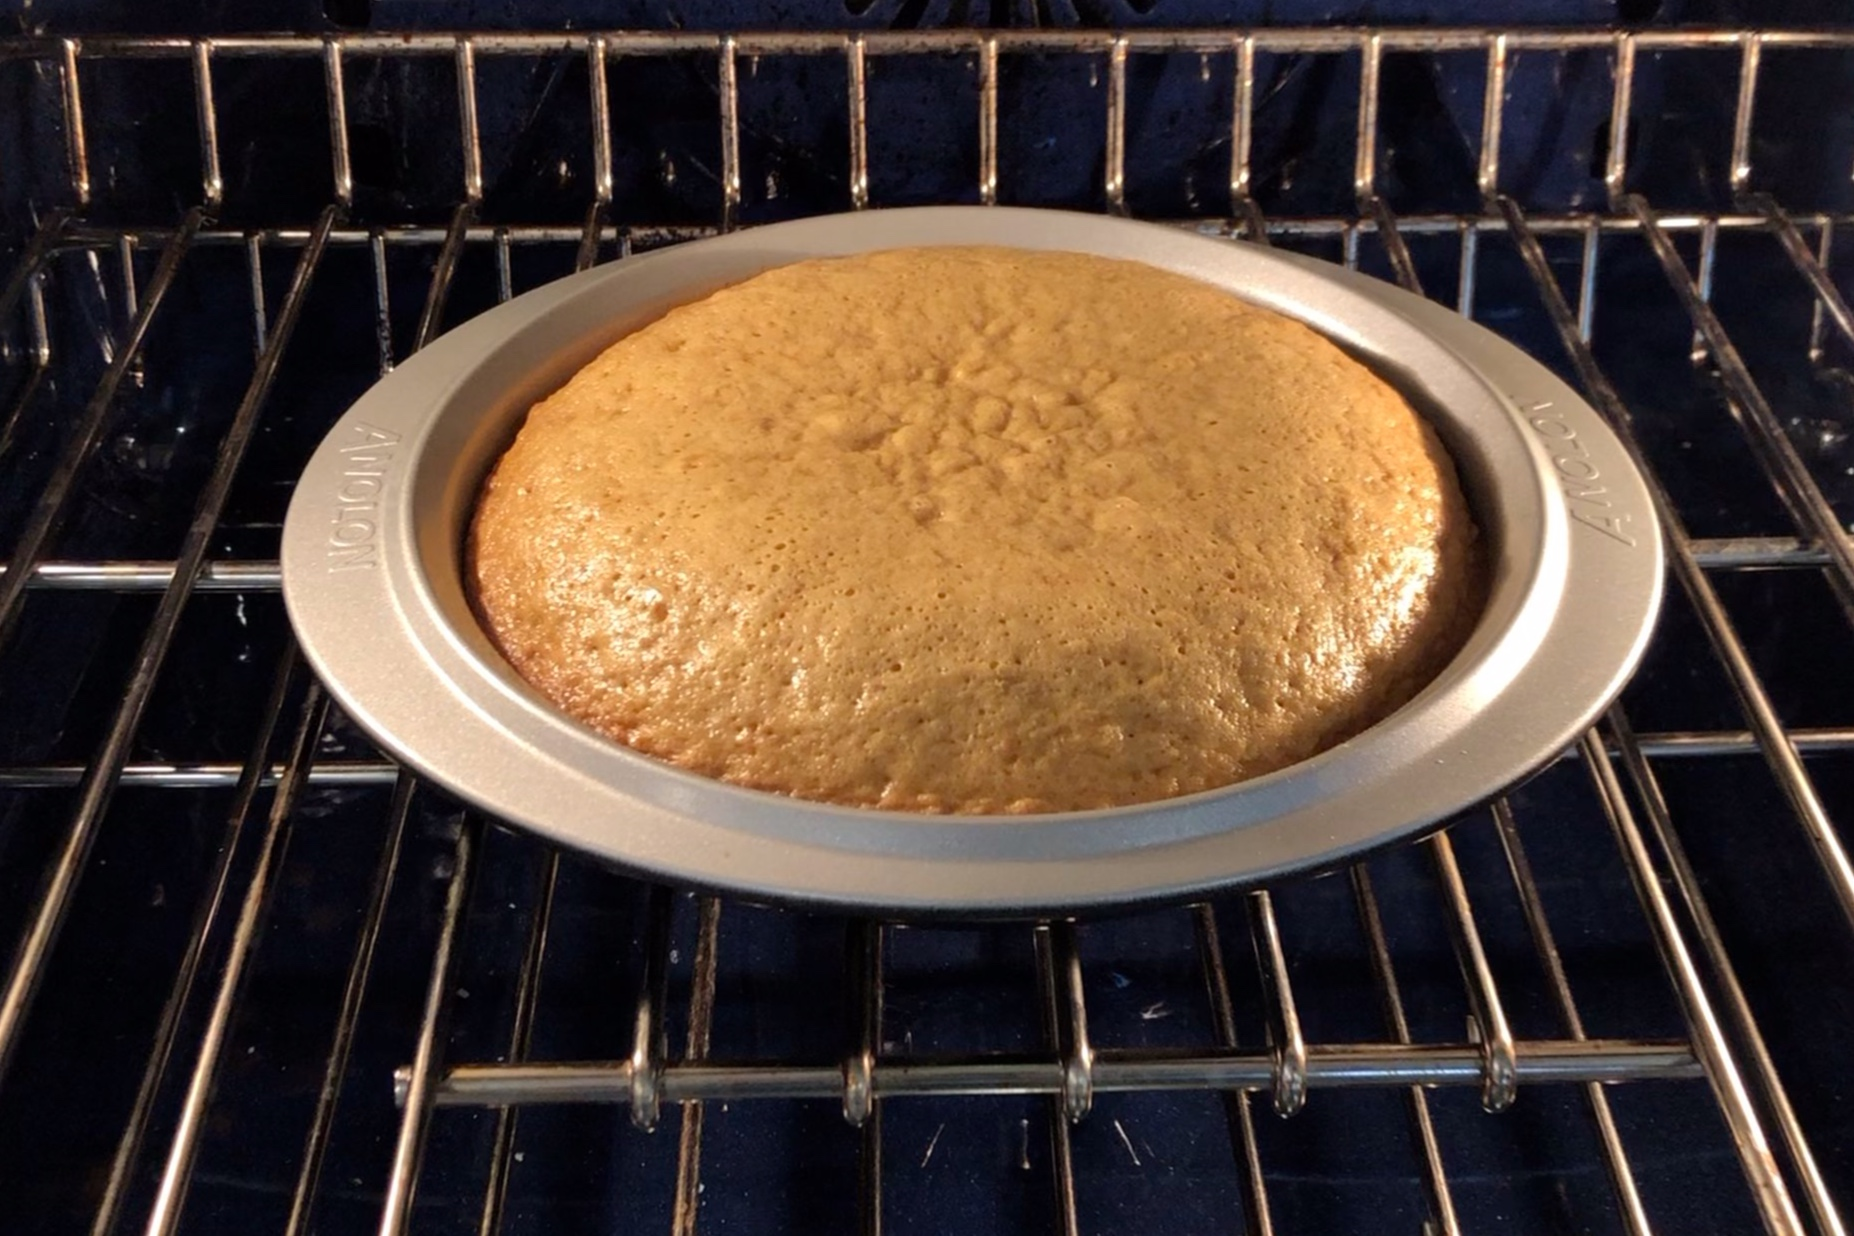 7. Bake the cakes separately for 25-30 minutes or until a toothpick inserted in the middle comes out clean. -